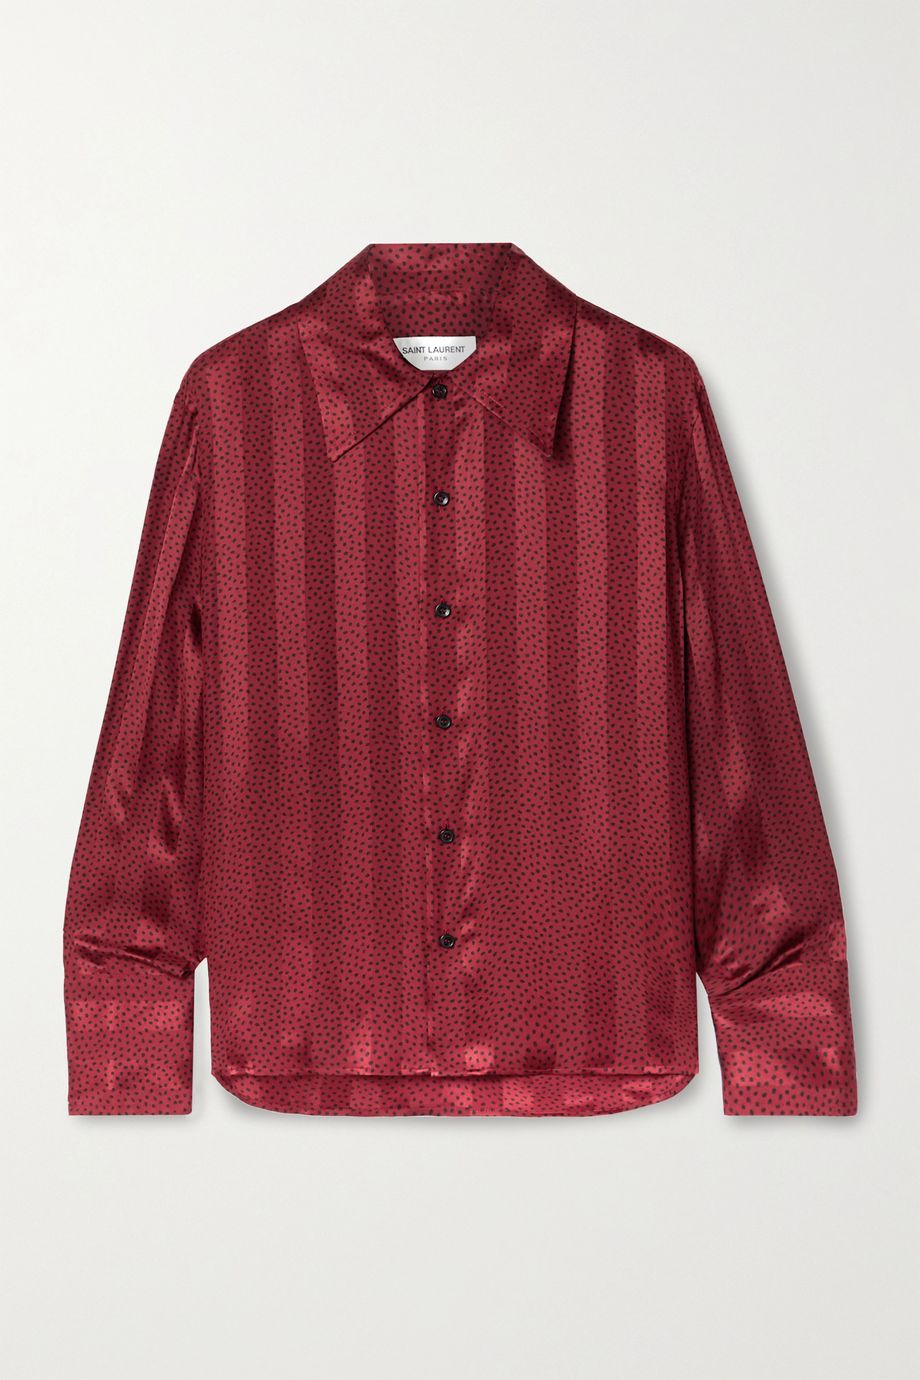 SAINT LAURENT Polka-dot silk-satin jacquard shirt